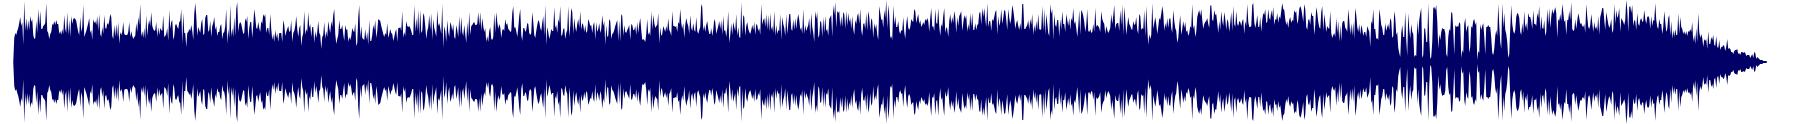 waveform of track #82677